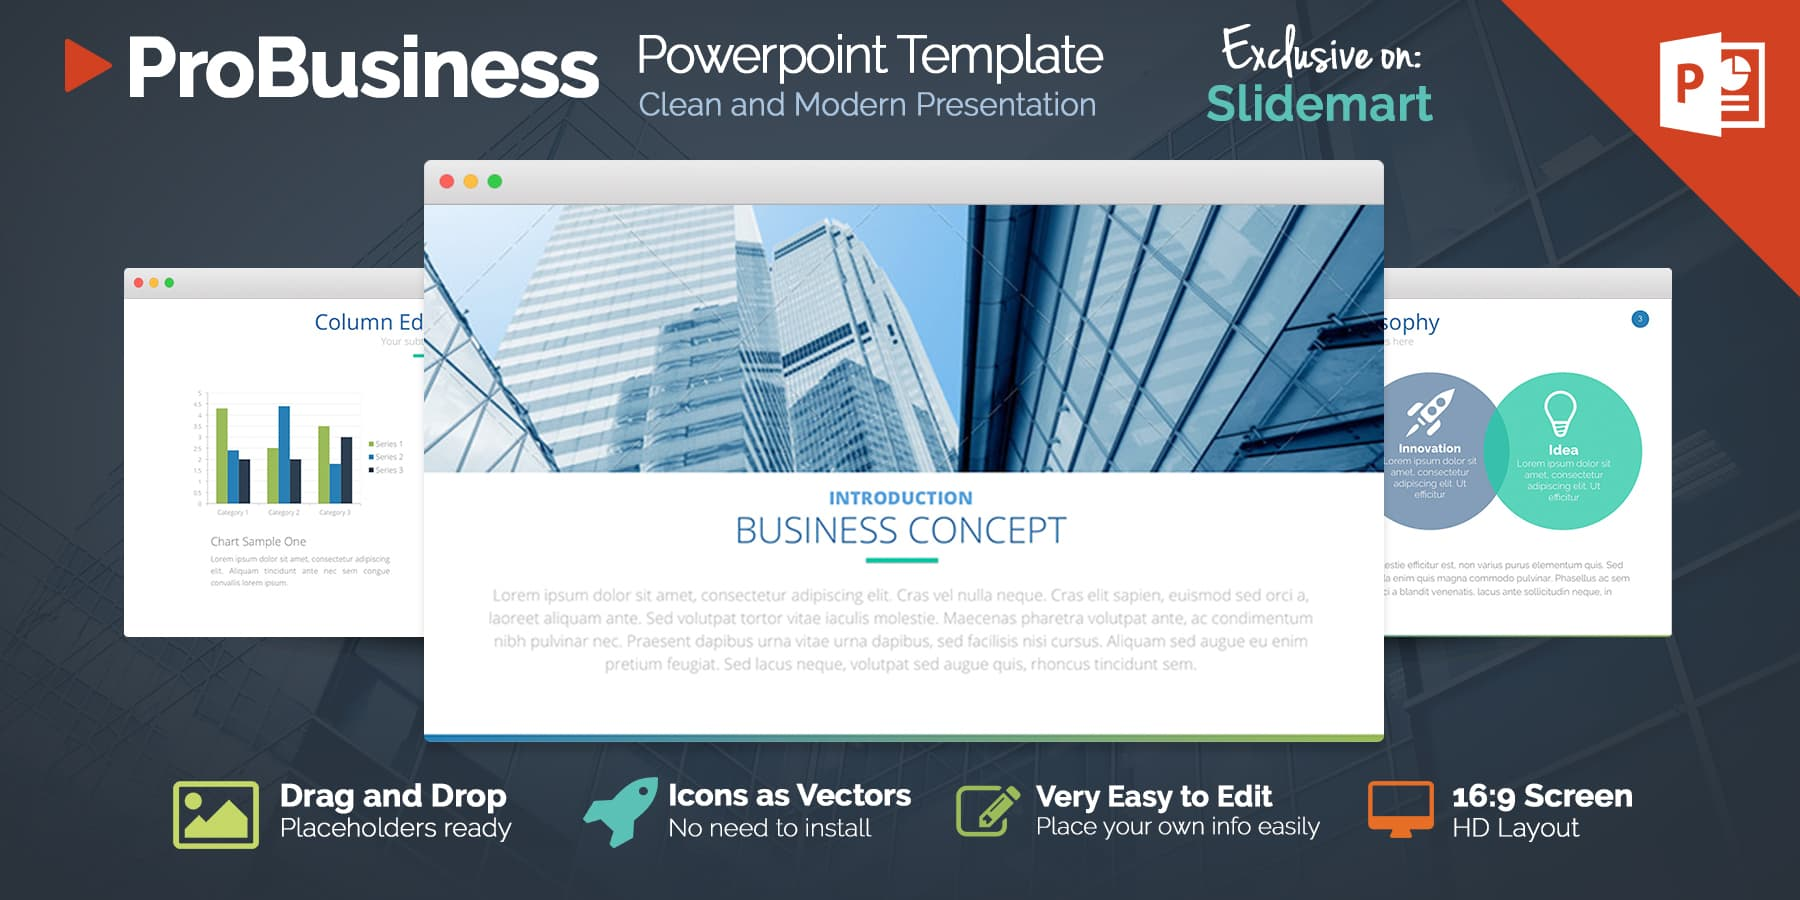 Ppt templates free business zrom ppt templates free business friedricerecipe Image collections